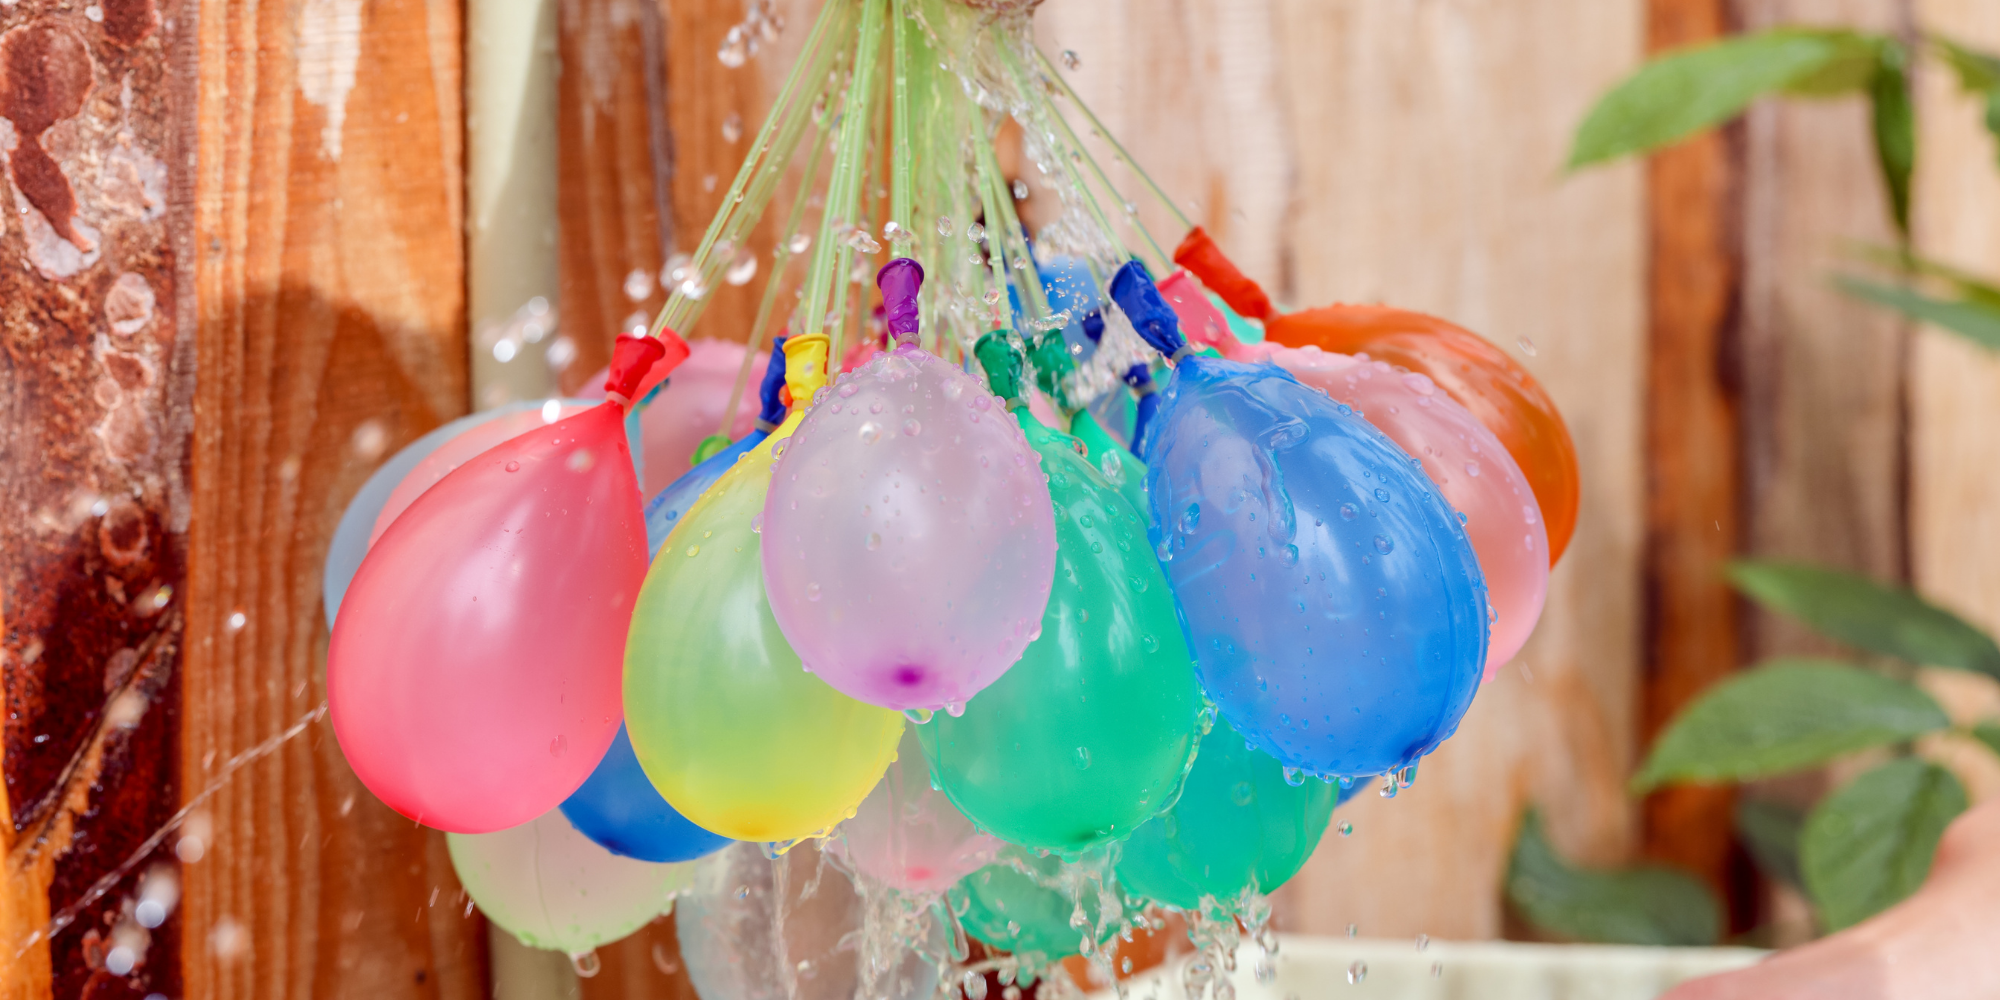 A bunch of water balloons